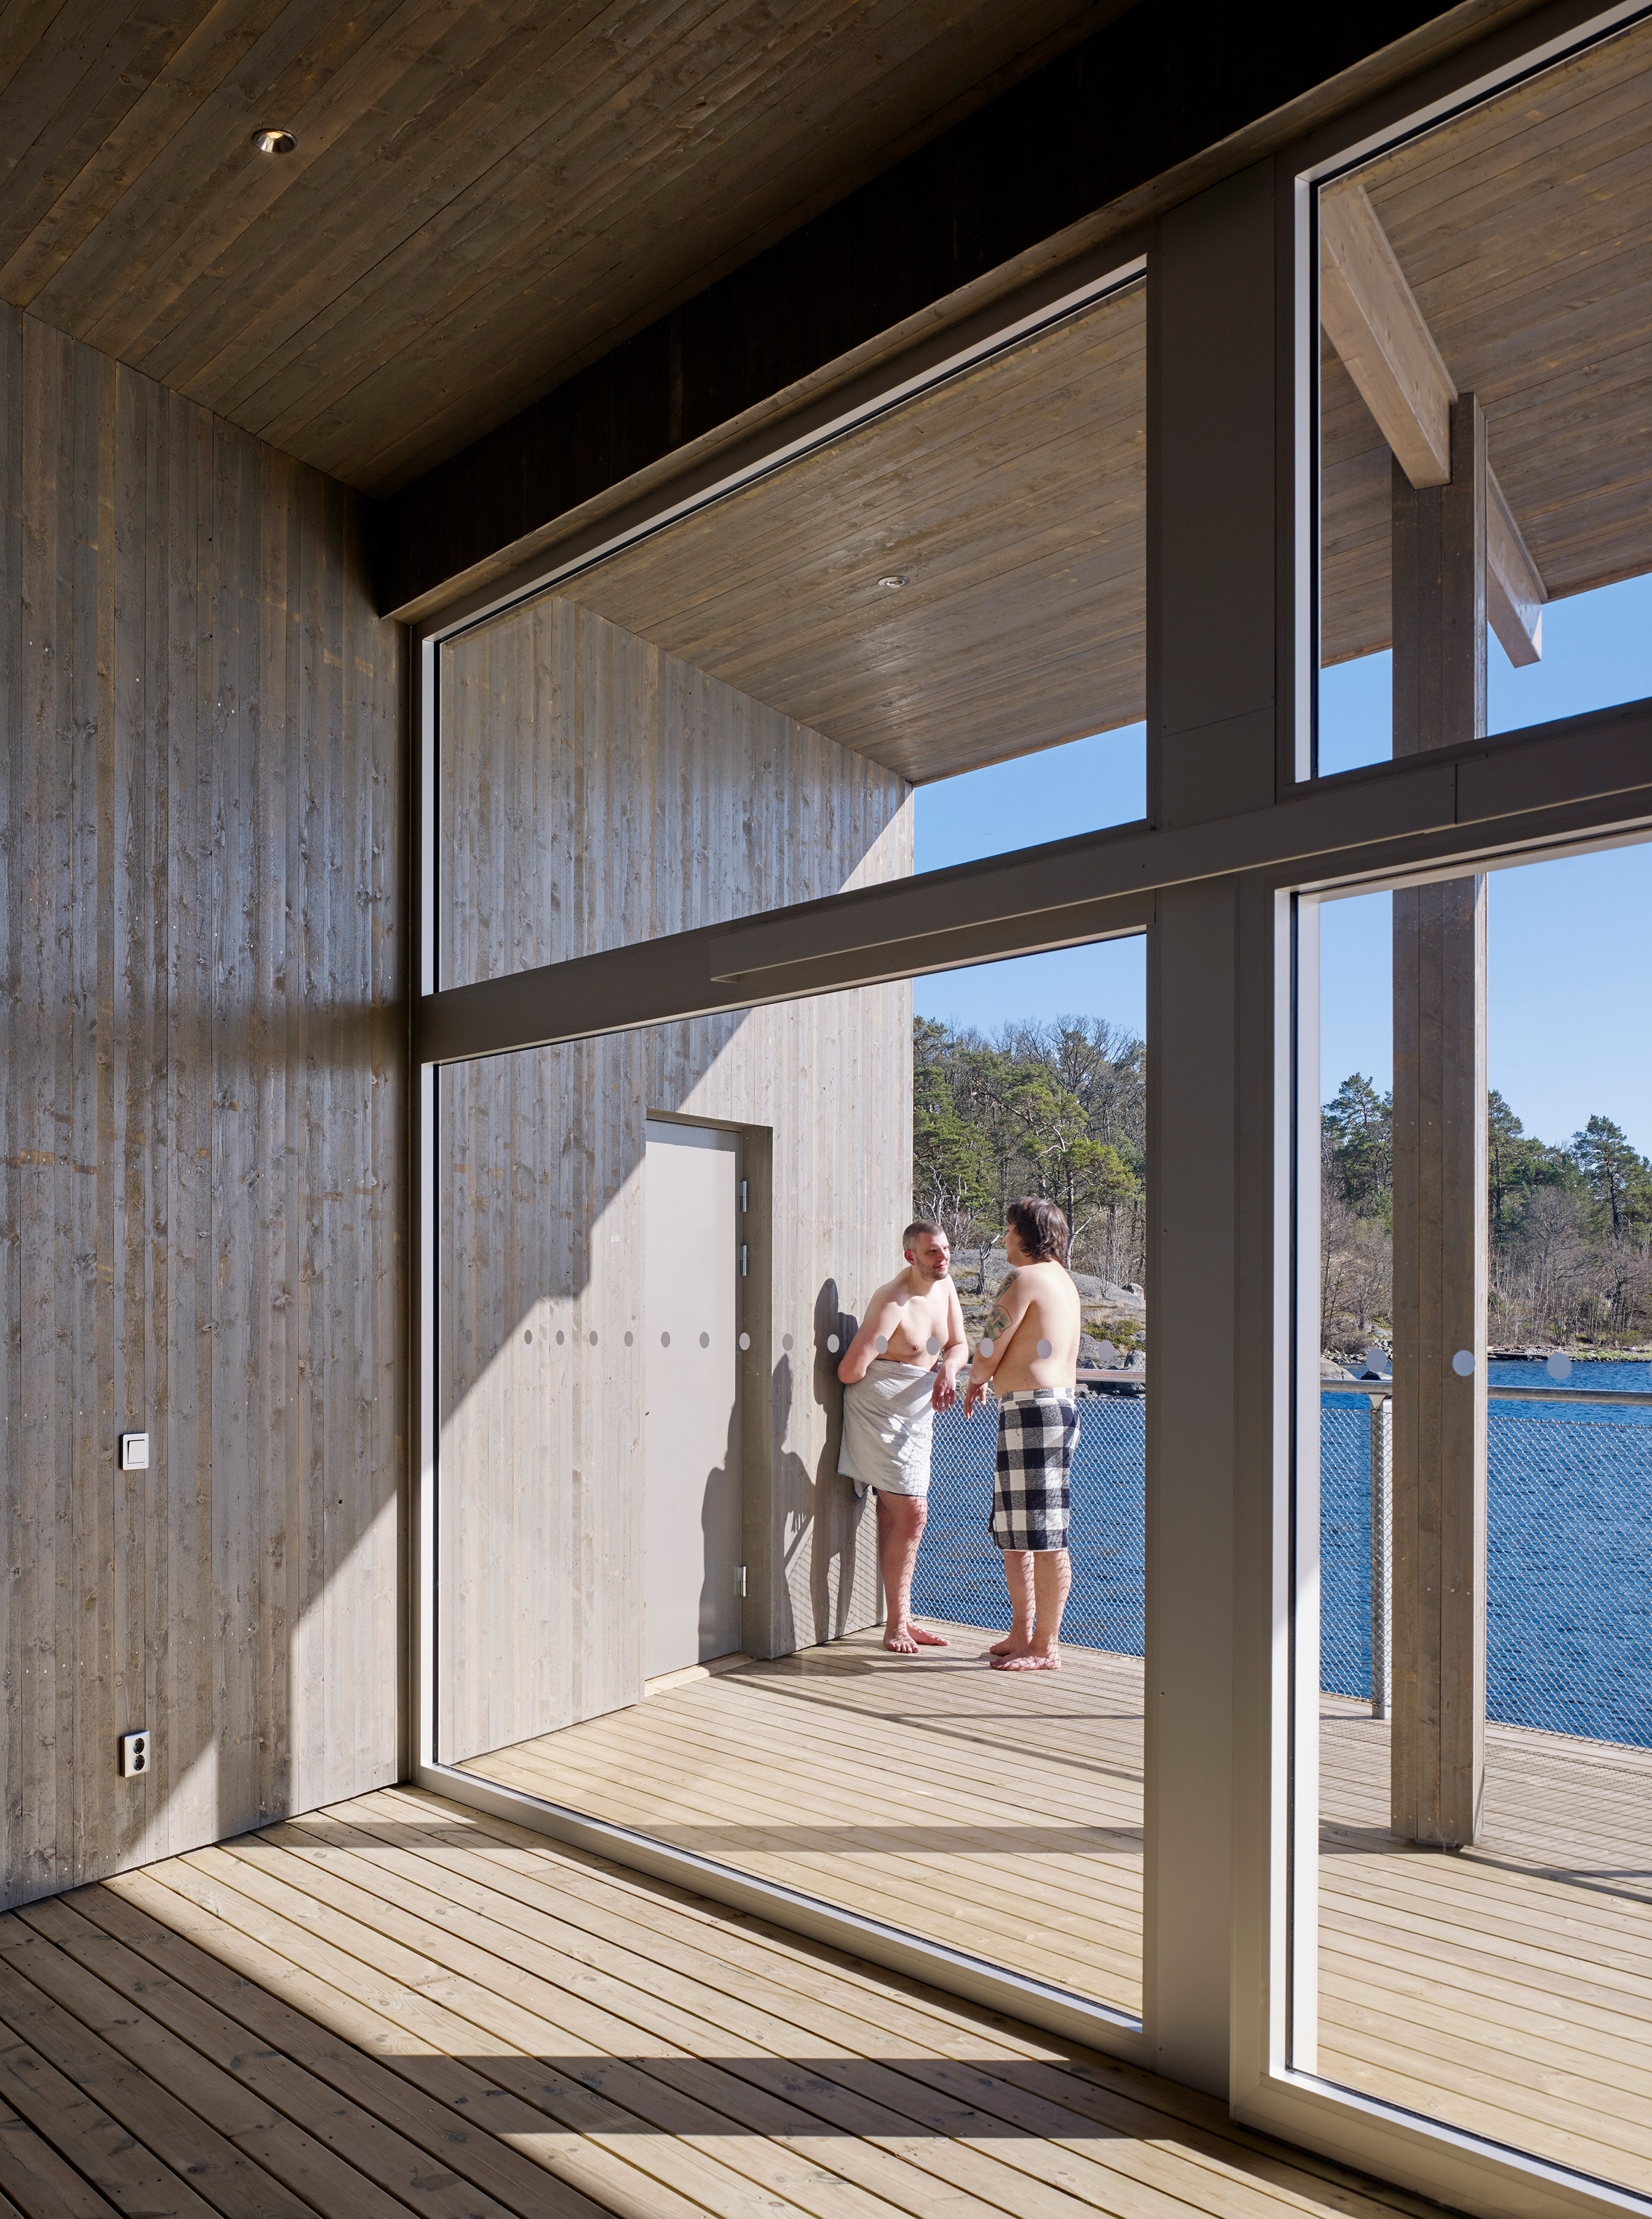 Karlhamn Cold Bath by White Arkitekter